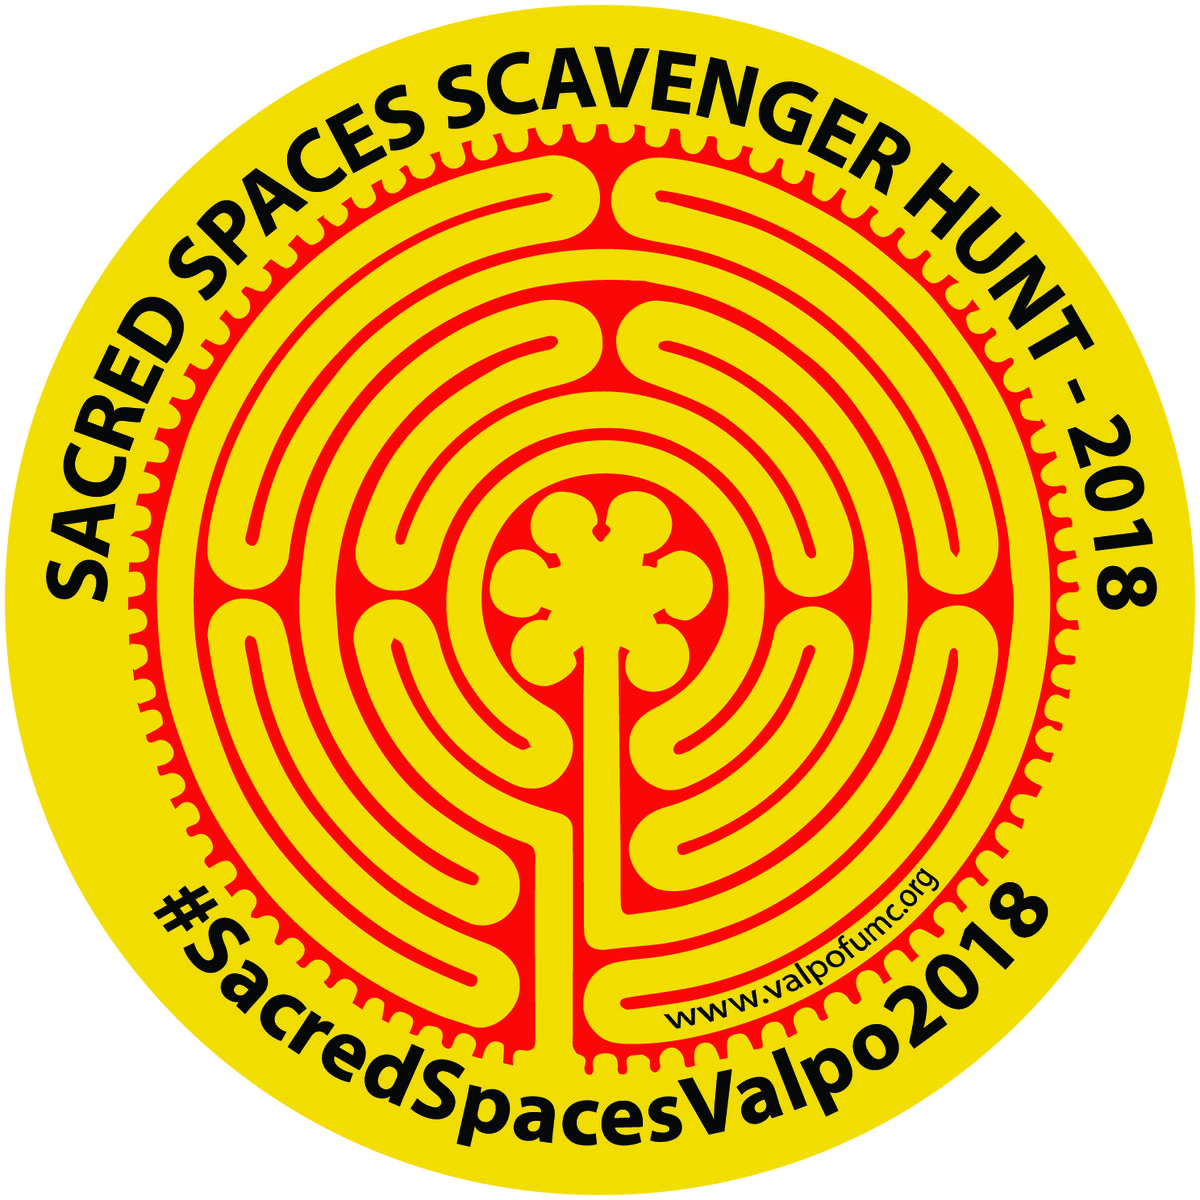 Sacred Spaces Valpo Scavenger Hunt 2018: Finding Spiritual Space in Everyday Life